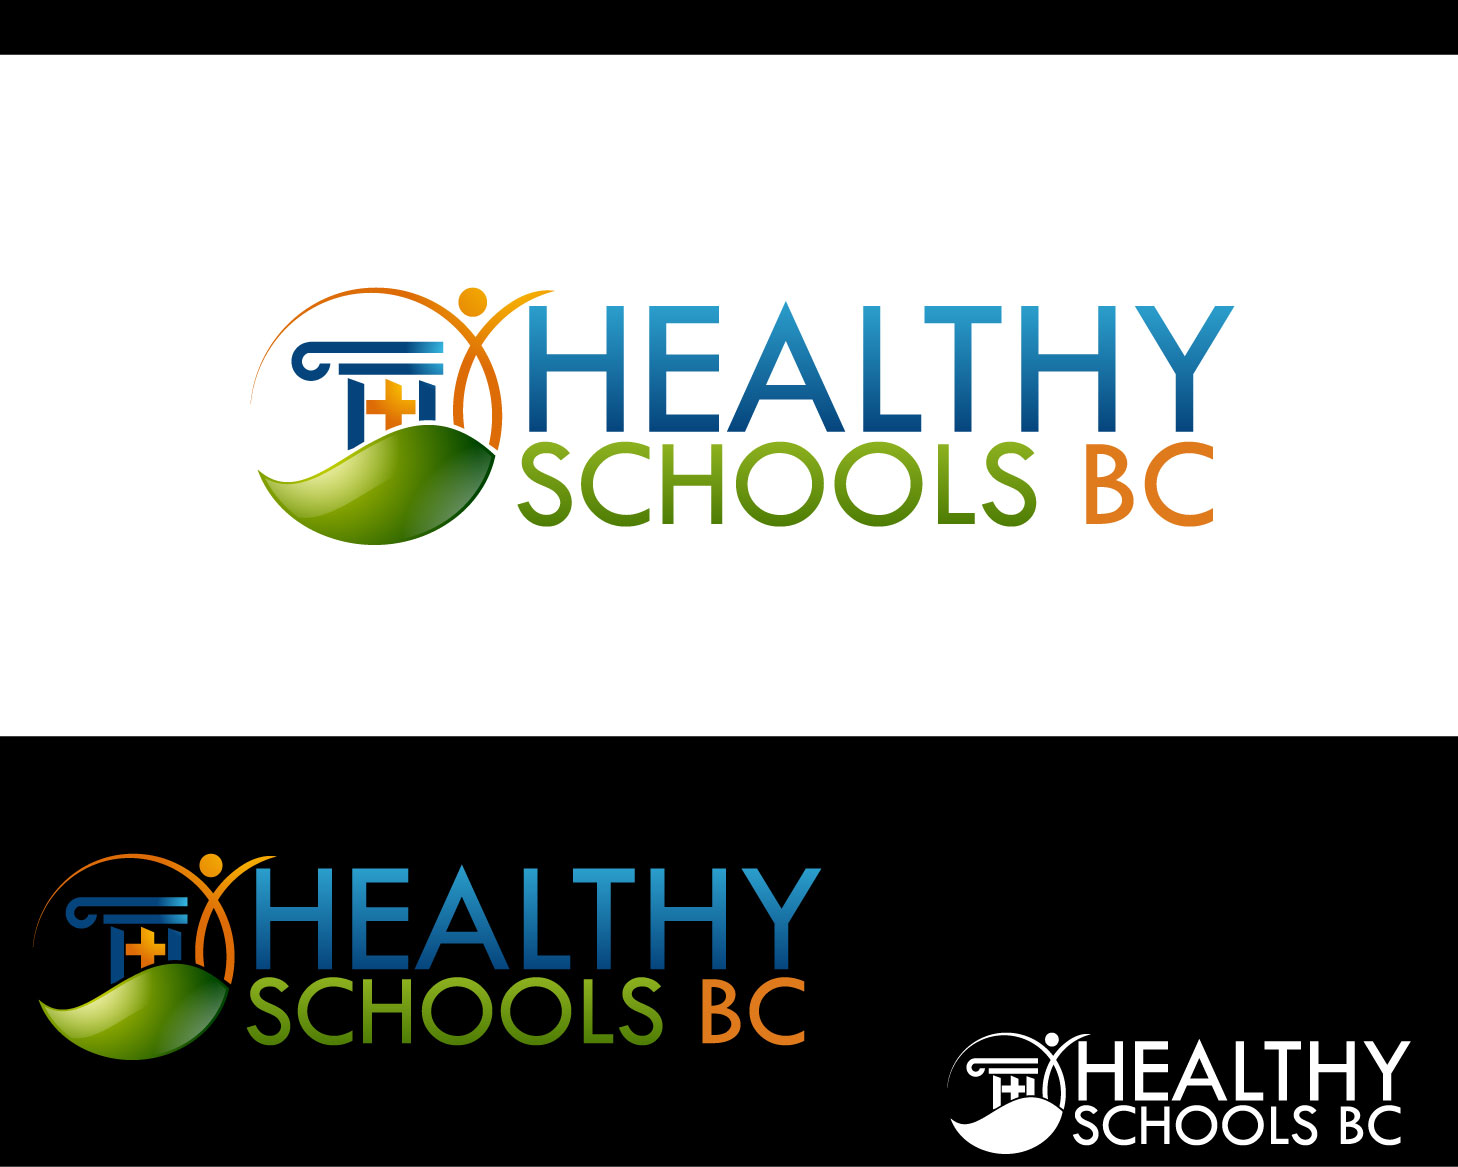 Logo Design by Private User - Entry No. 418 in the Logo Design Contest SImple, Creative and Clean Logo Design for Healthy Schools British Columbia, Canada.